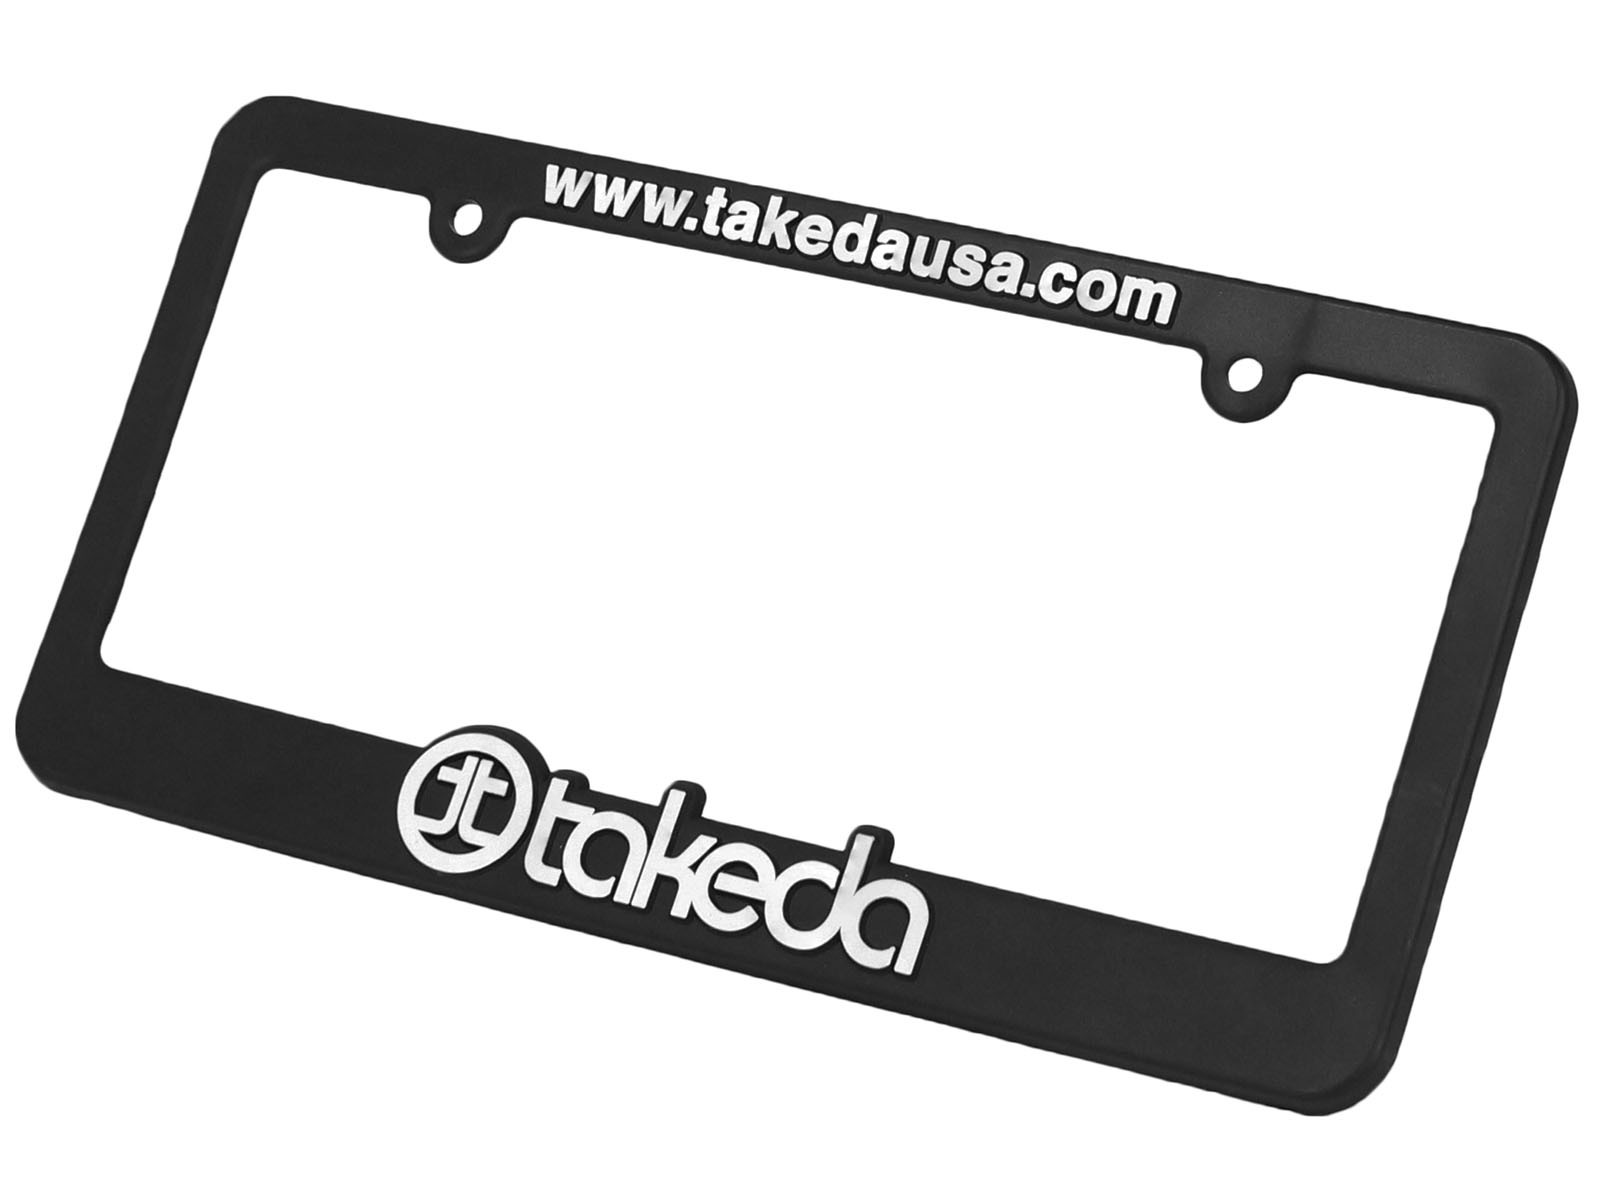 aFe POWER TP-7014F License Plate Frame: Takeda